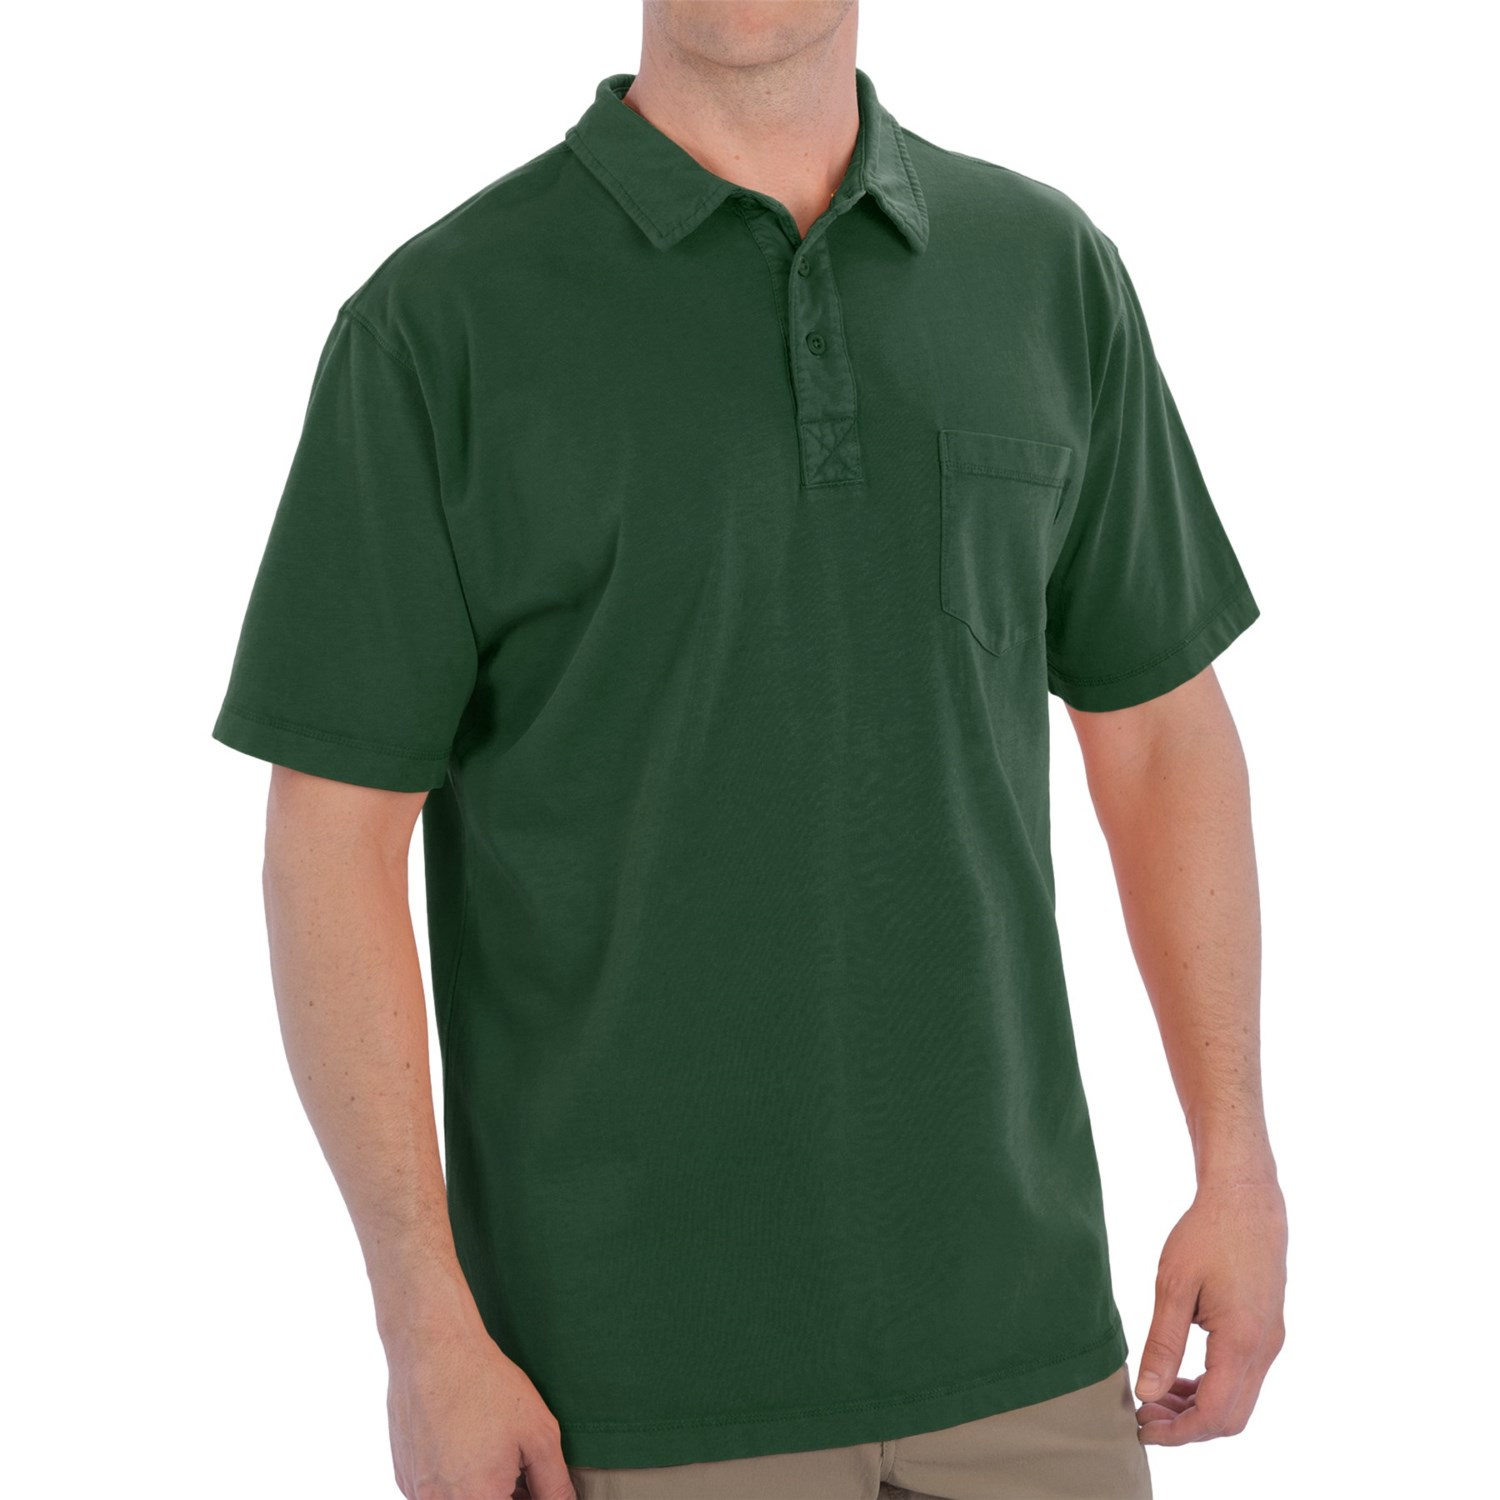 Woolrich first forks polo shirt for men Man in polo shirt